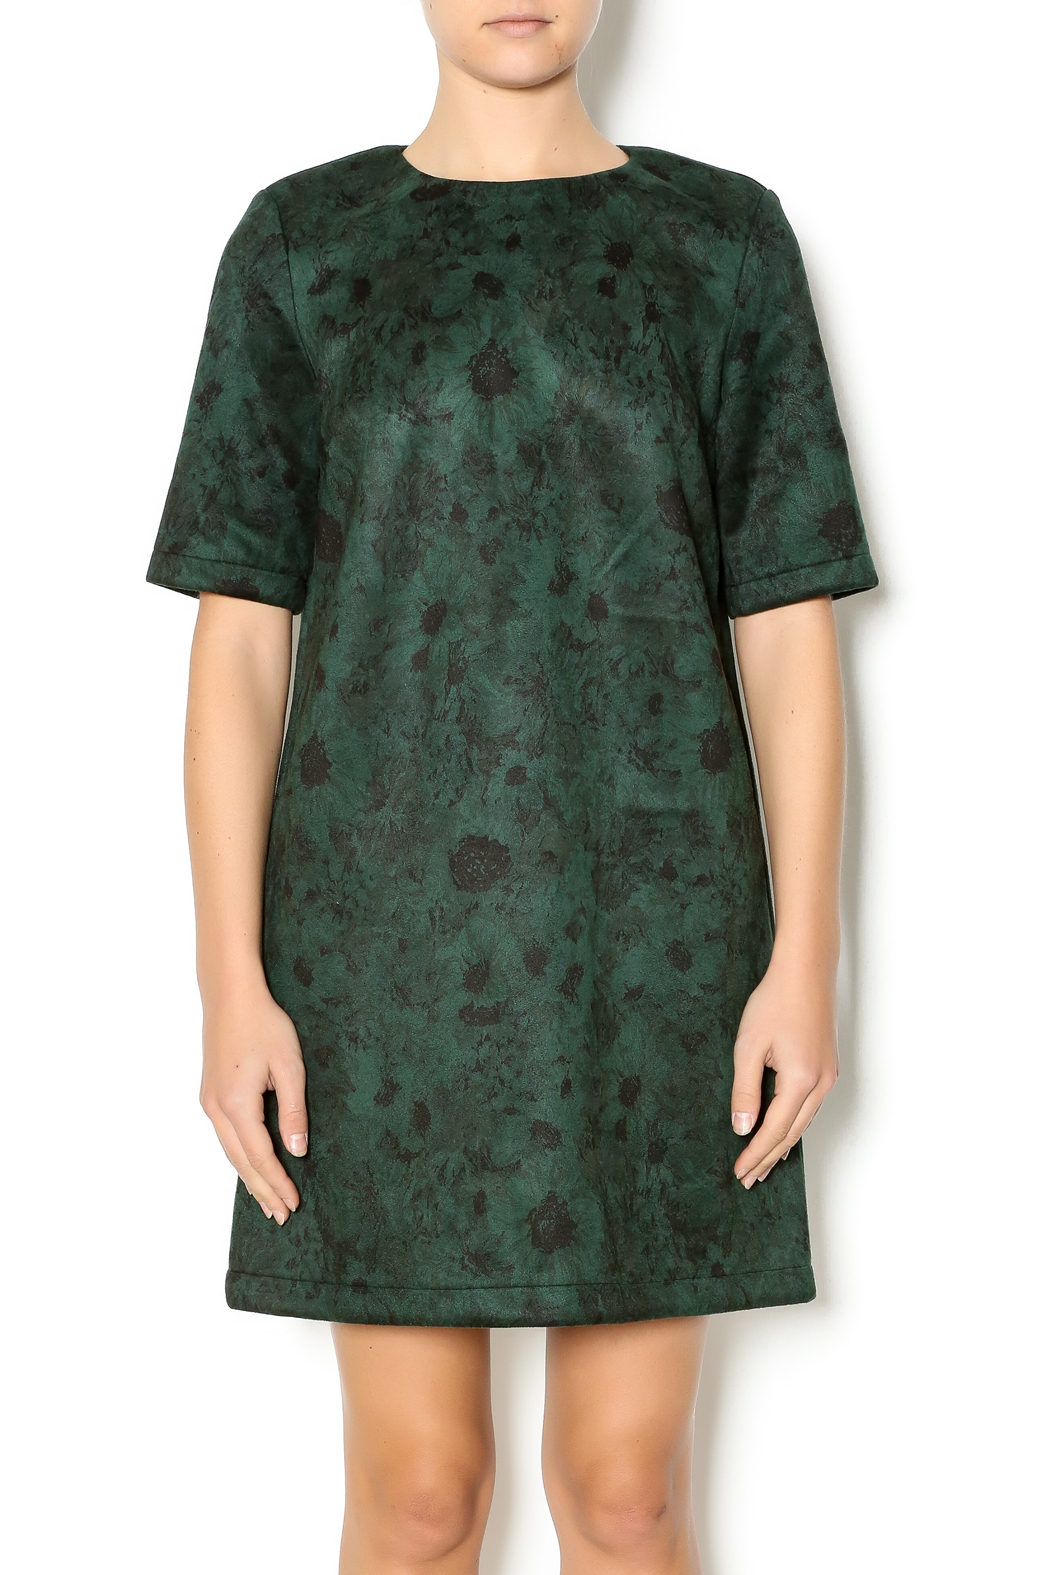 FRNCH Floral Suede Dress - Main Image